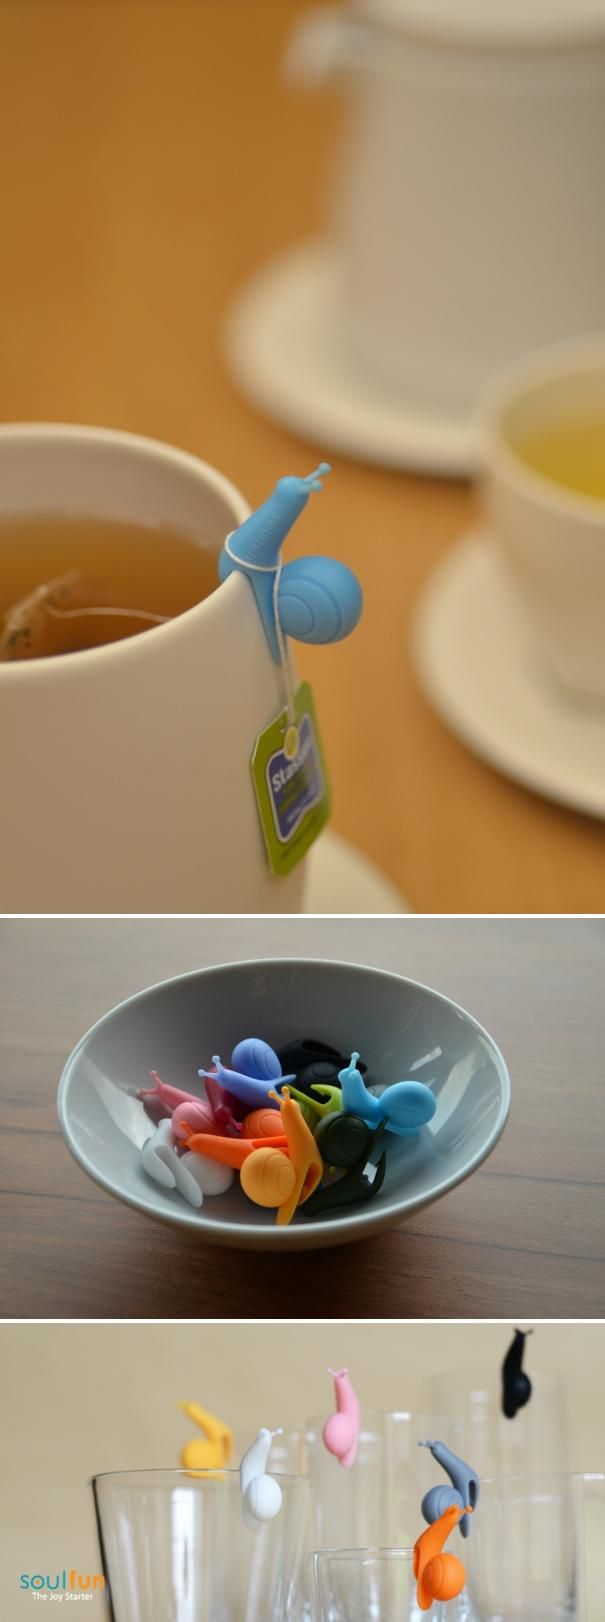 Snail tea bag holders. I LOVE THESE!!!!